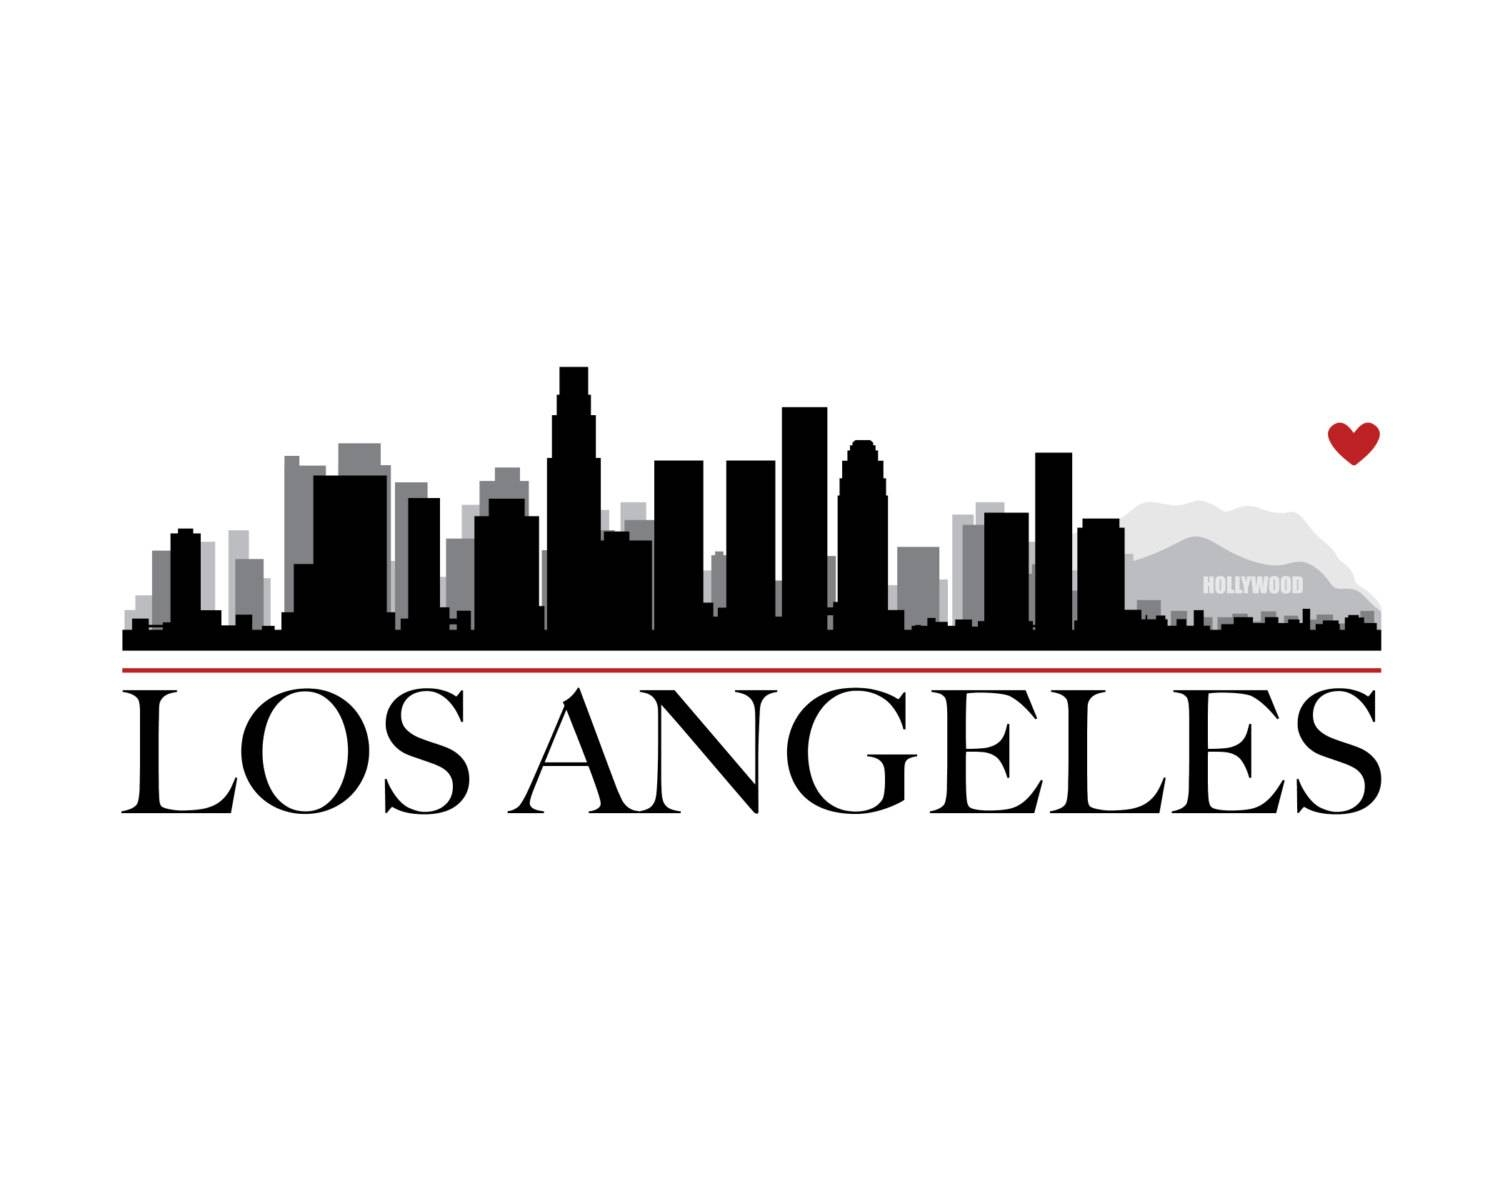 Los Angeles City Skyline With Heart Diy Printable Wall Art Intended For Newest Los Angeles Wall Art (View 6 of 20)